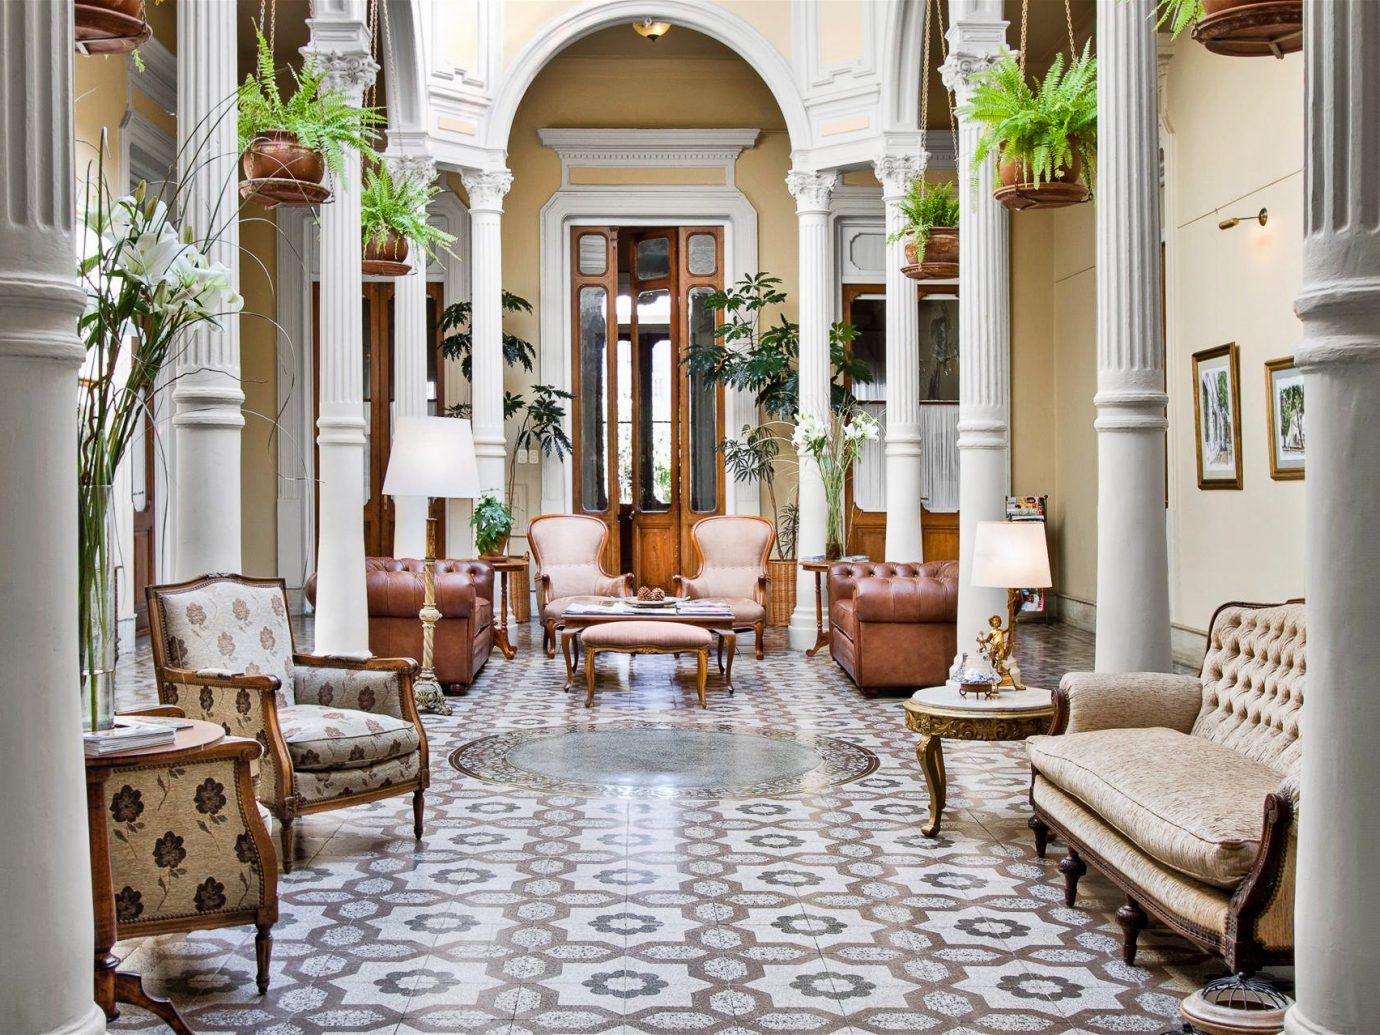 Boutique Hotels Luxury Travel chair interior design living room Lobby room column furniture home estate real estate window flooring area